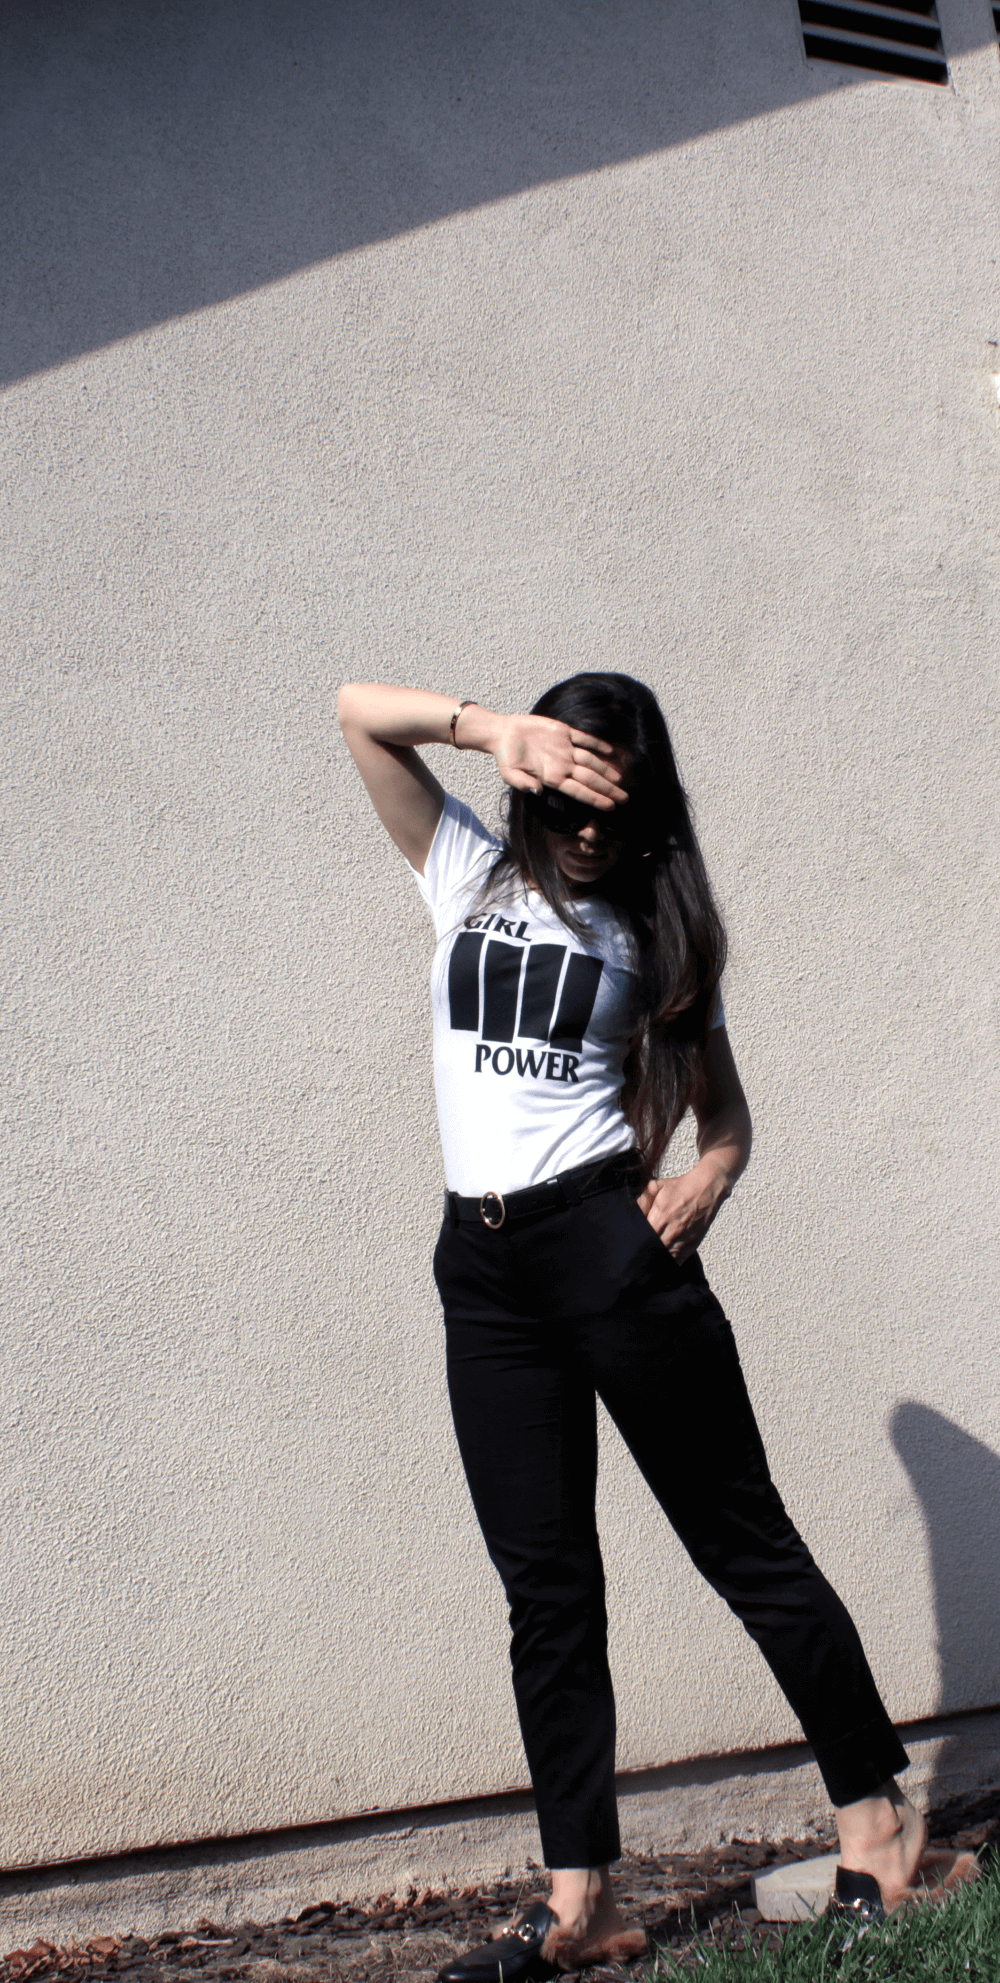 Dolores Haze is a brand of sustainable and ethical fashion made in New York, their Girl Power T-Shirt is made with organic cotton and 10% of the proceeds is donated to Planned Parenthood